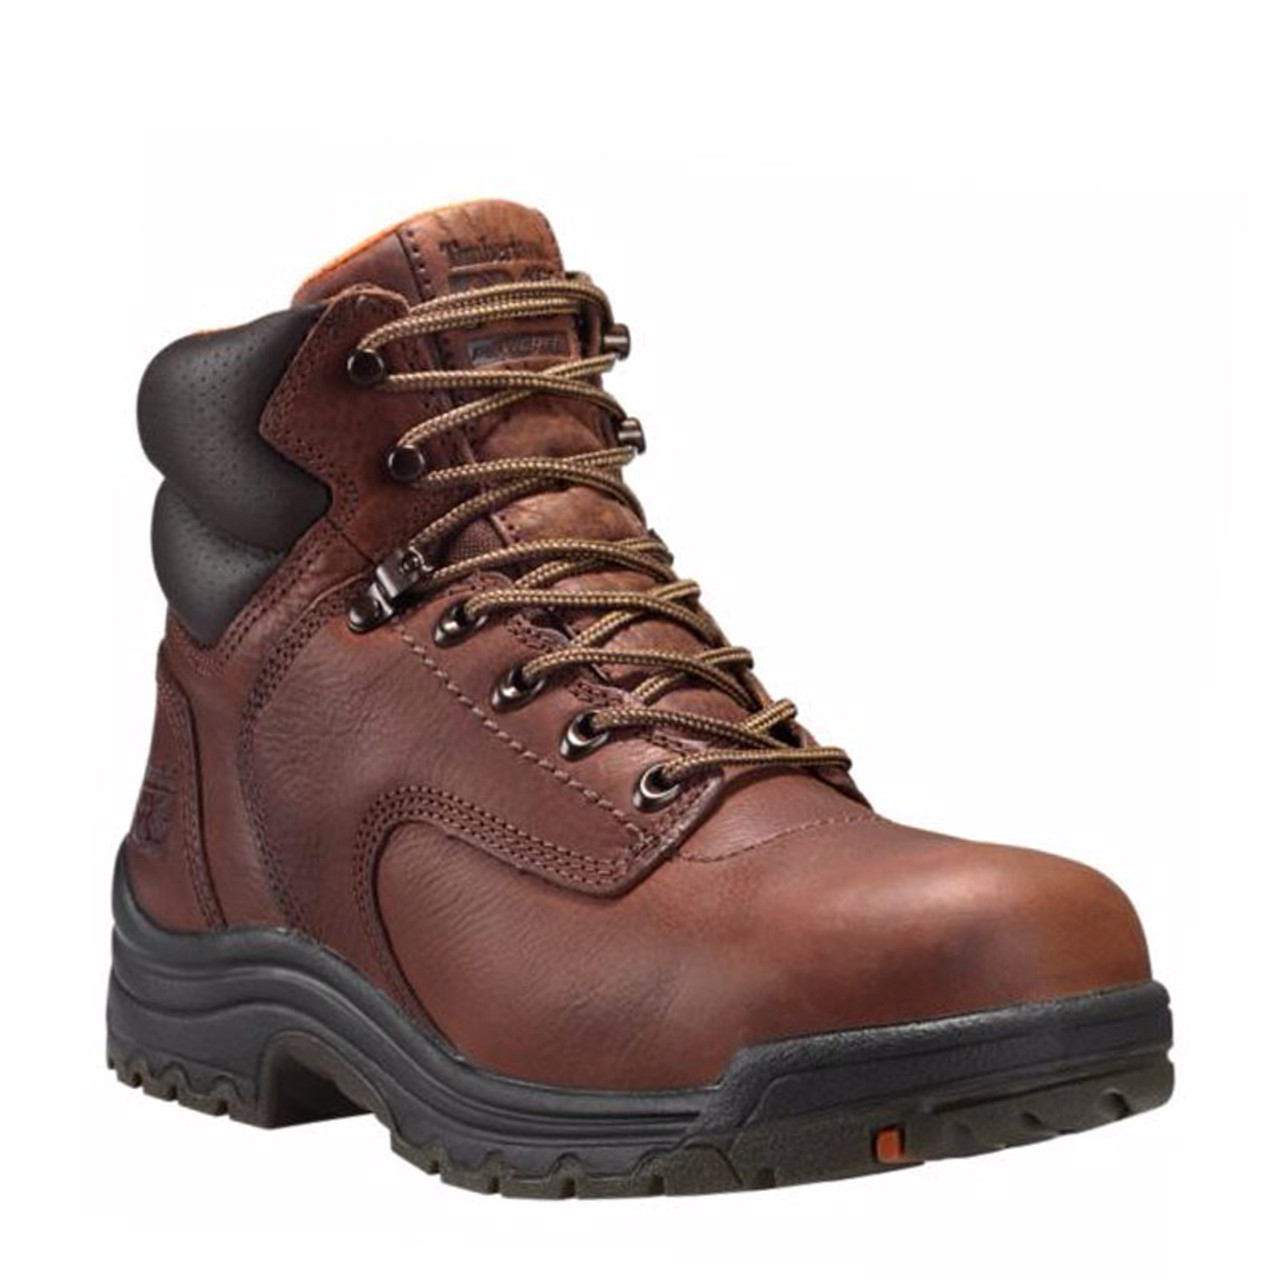 b4f80be5e2d Timberland PRO 26388 Women's TITAN Safety Toe Work Boots